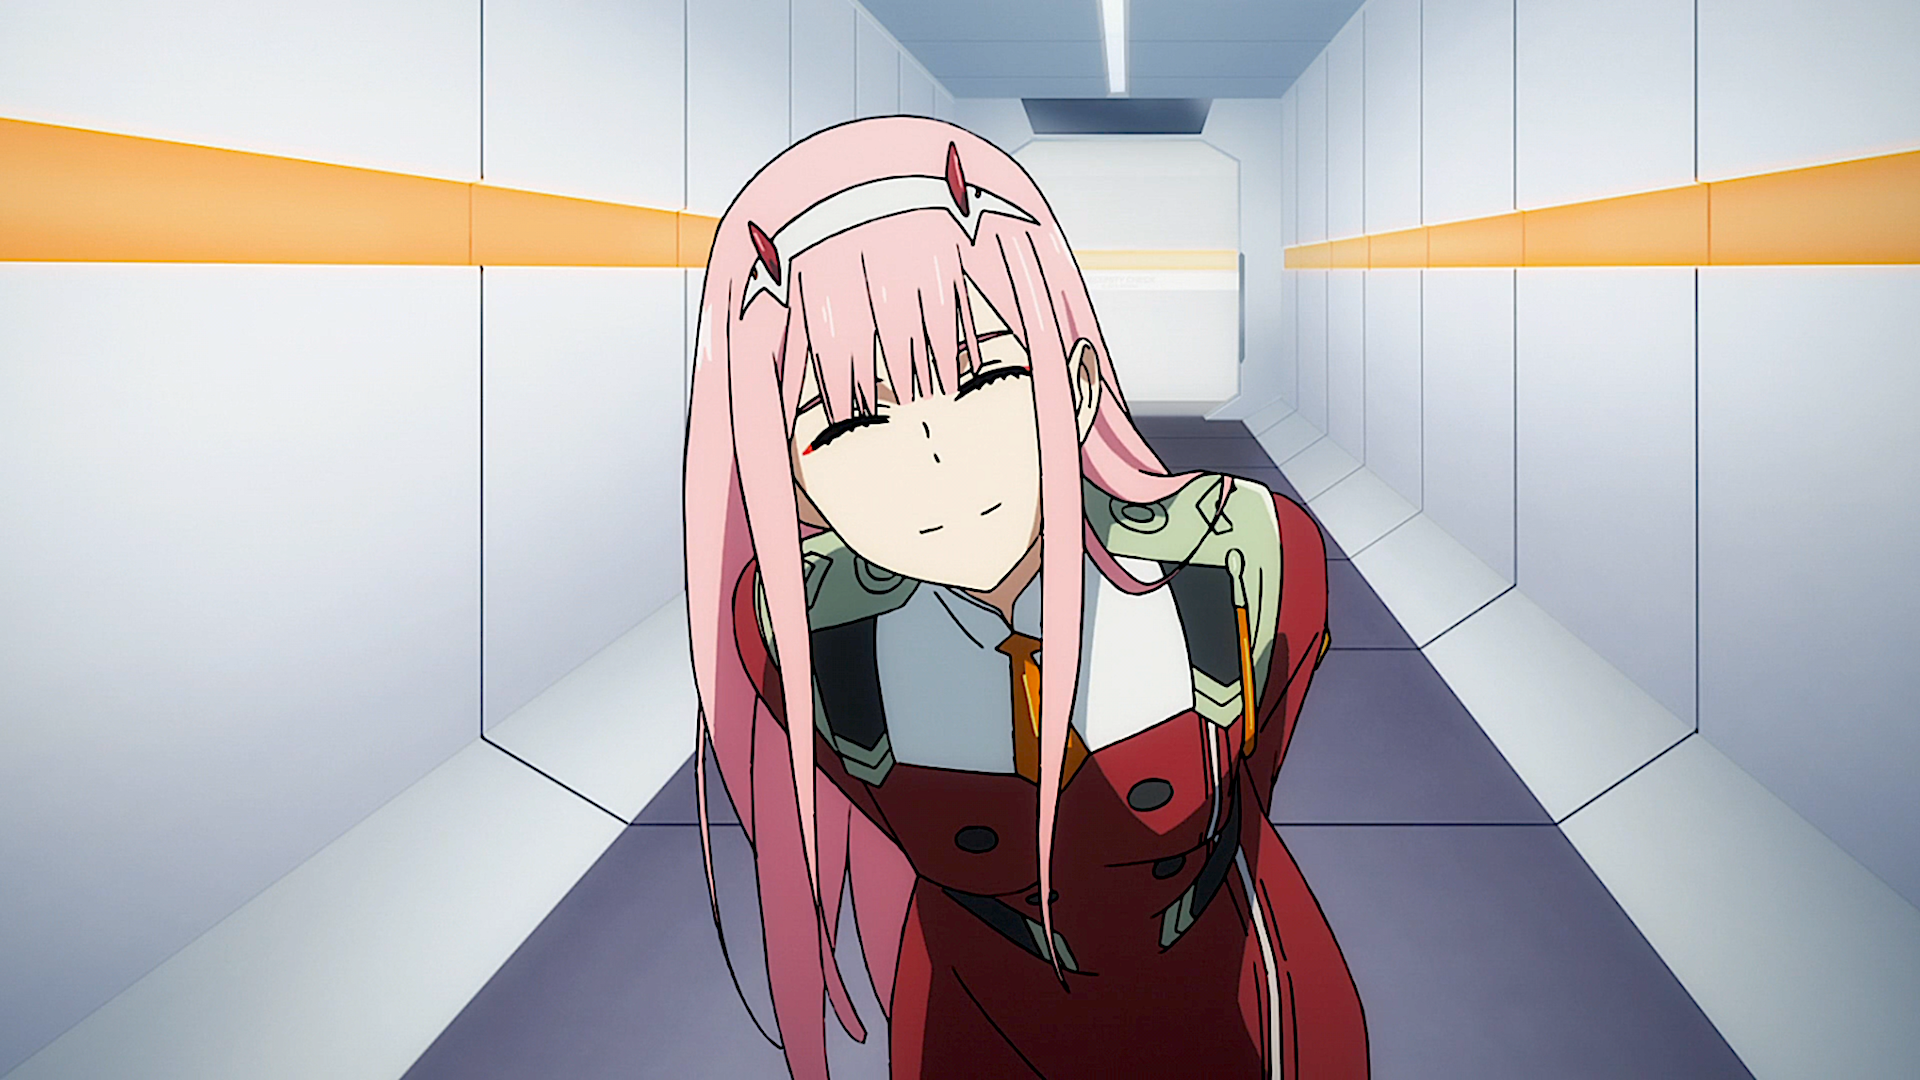 578 Zero Two Darling In The Franxx Hd Wallpapers Background Images Wallpaper Abyss